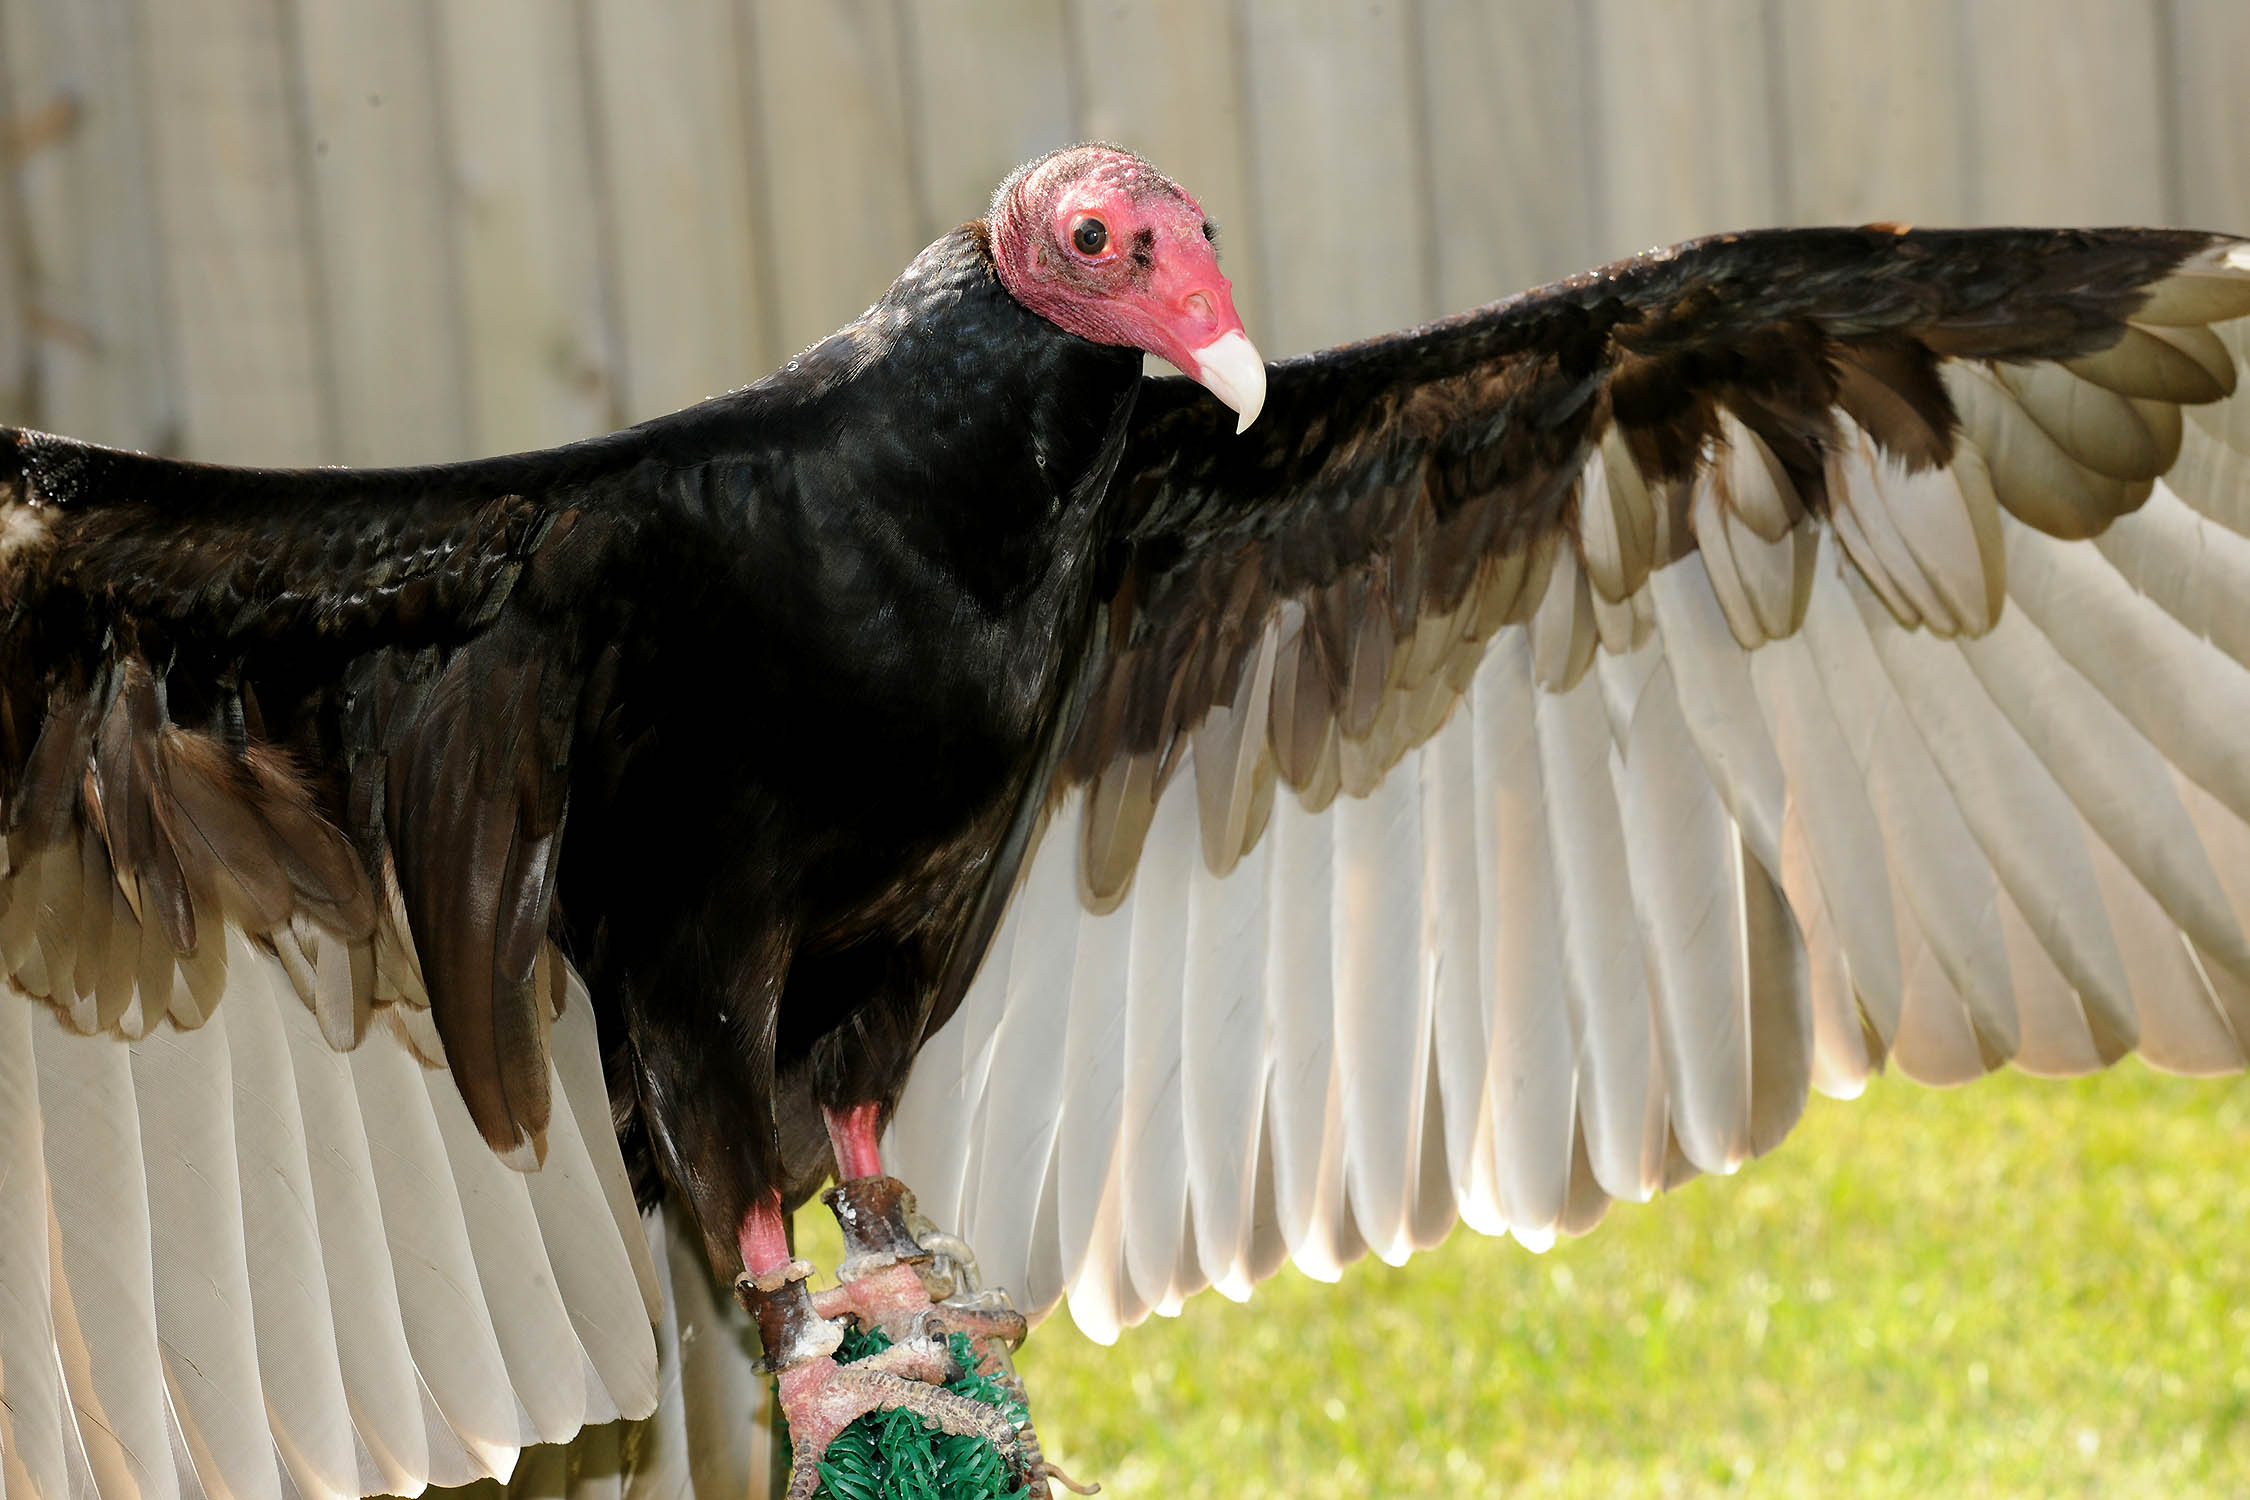 Georgette, the turkey vulture shows off her four foot wingspan at Brookfield Zoo (photo courtesy of Brookfield Zoo)